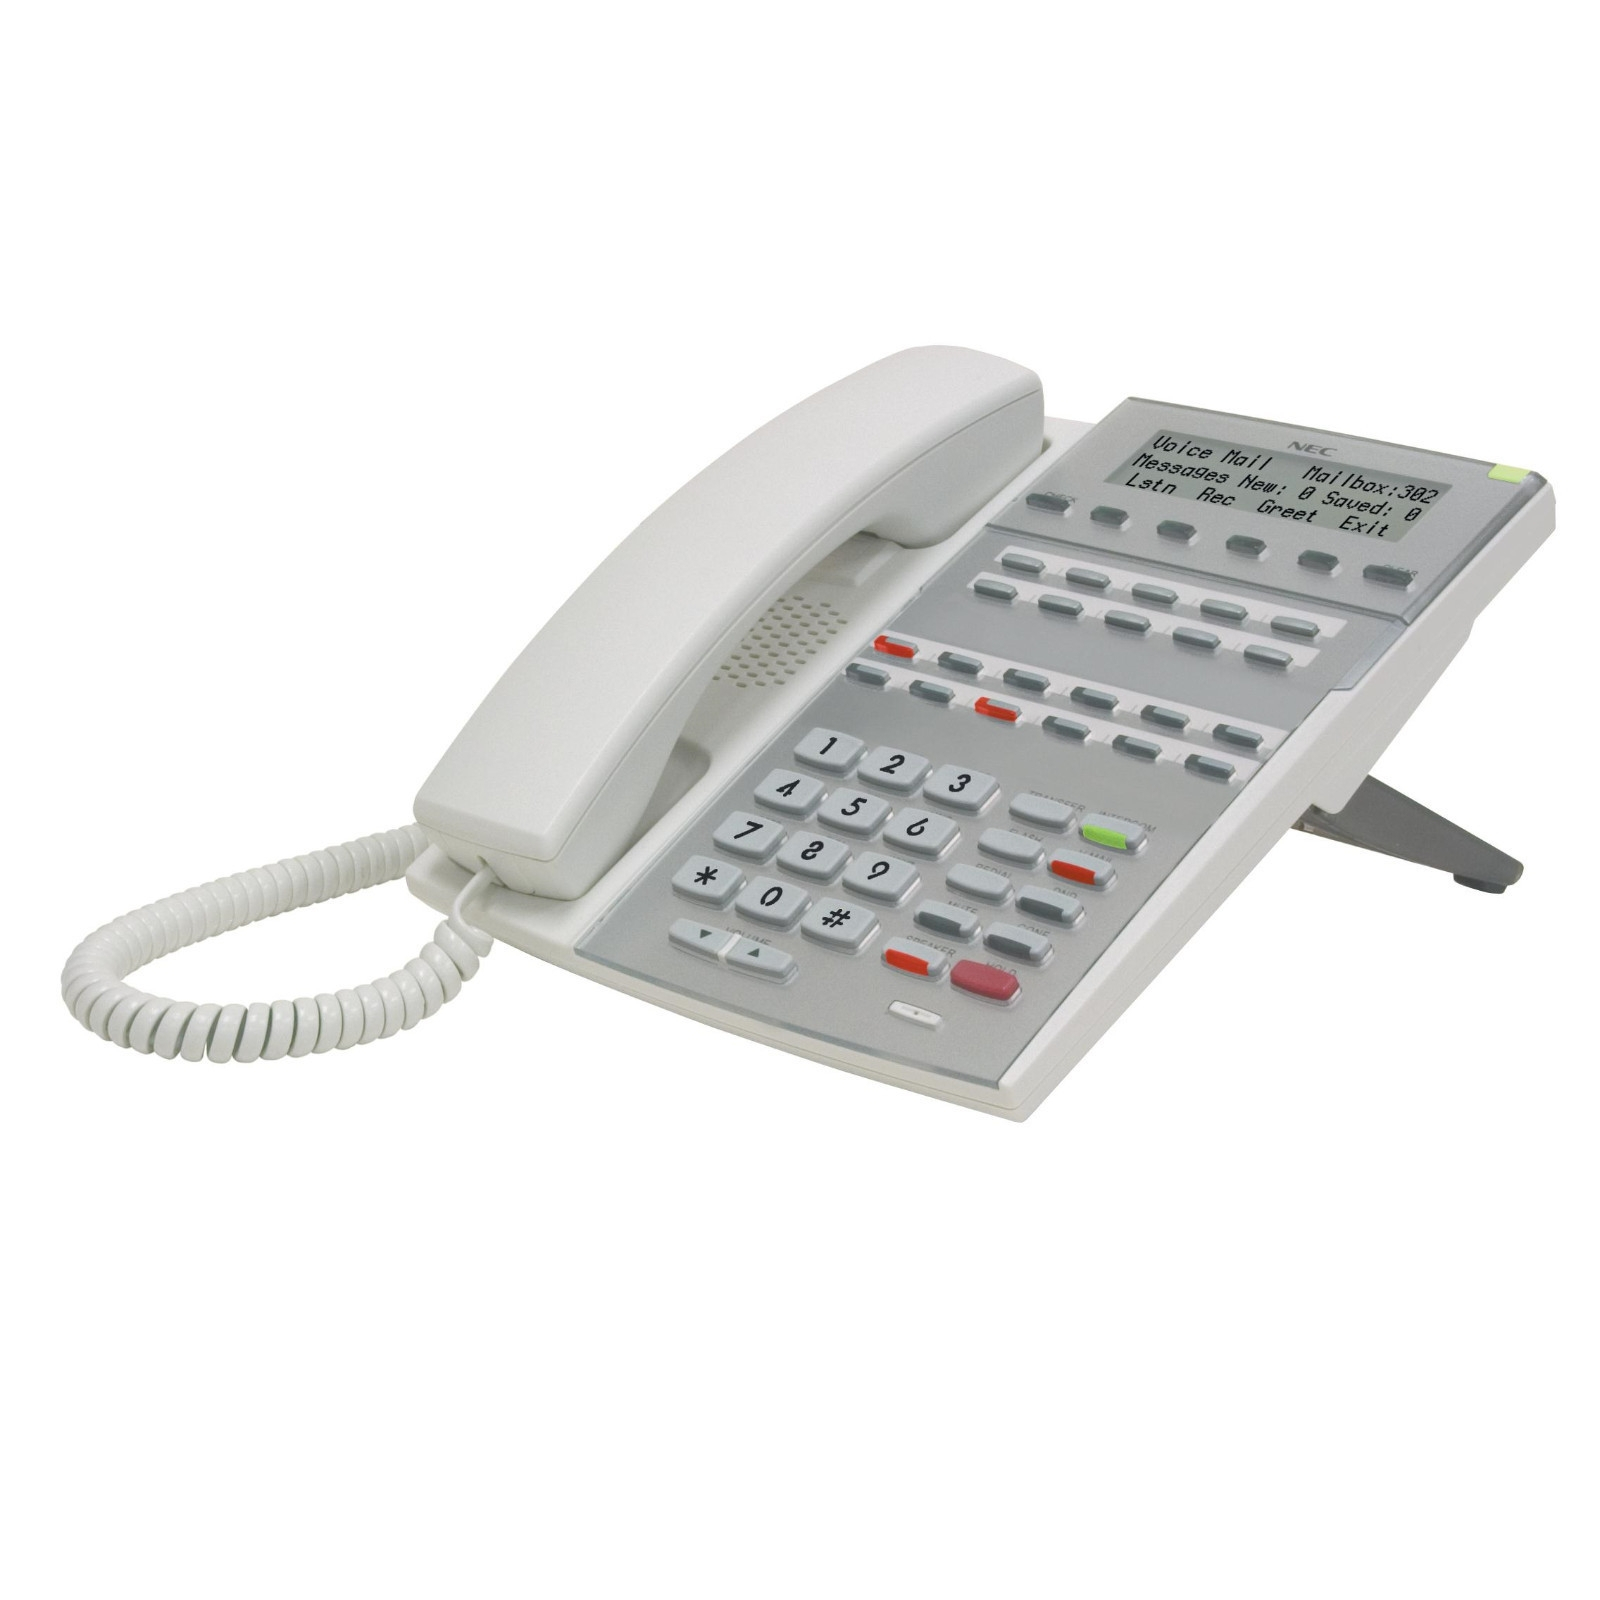 Black NEC 1090021 NEC DSX 34B Display Telephone with Speakerphone and Backlight